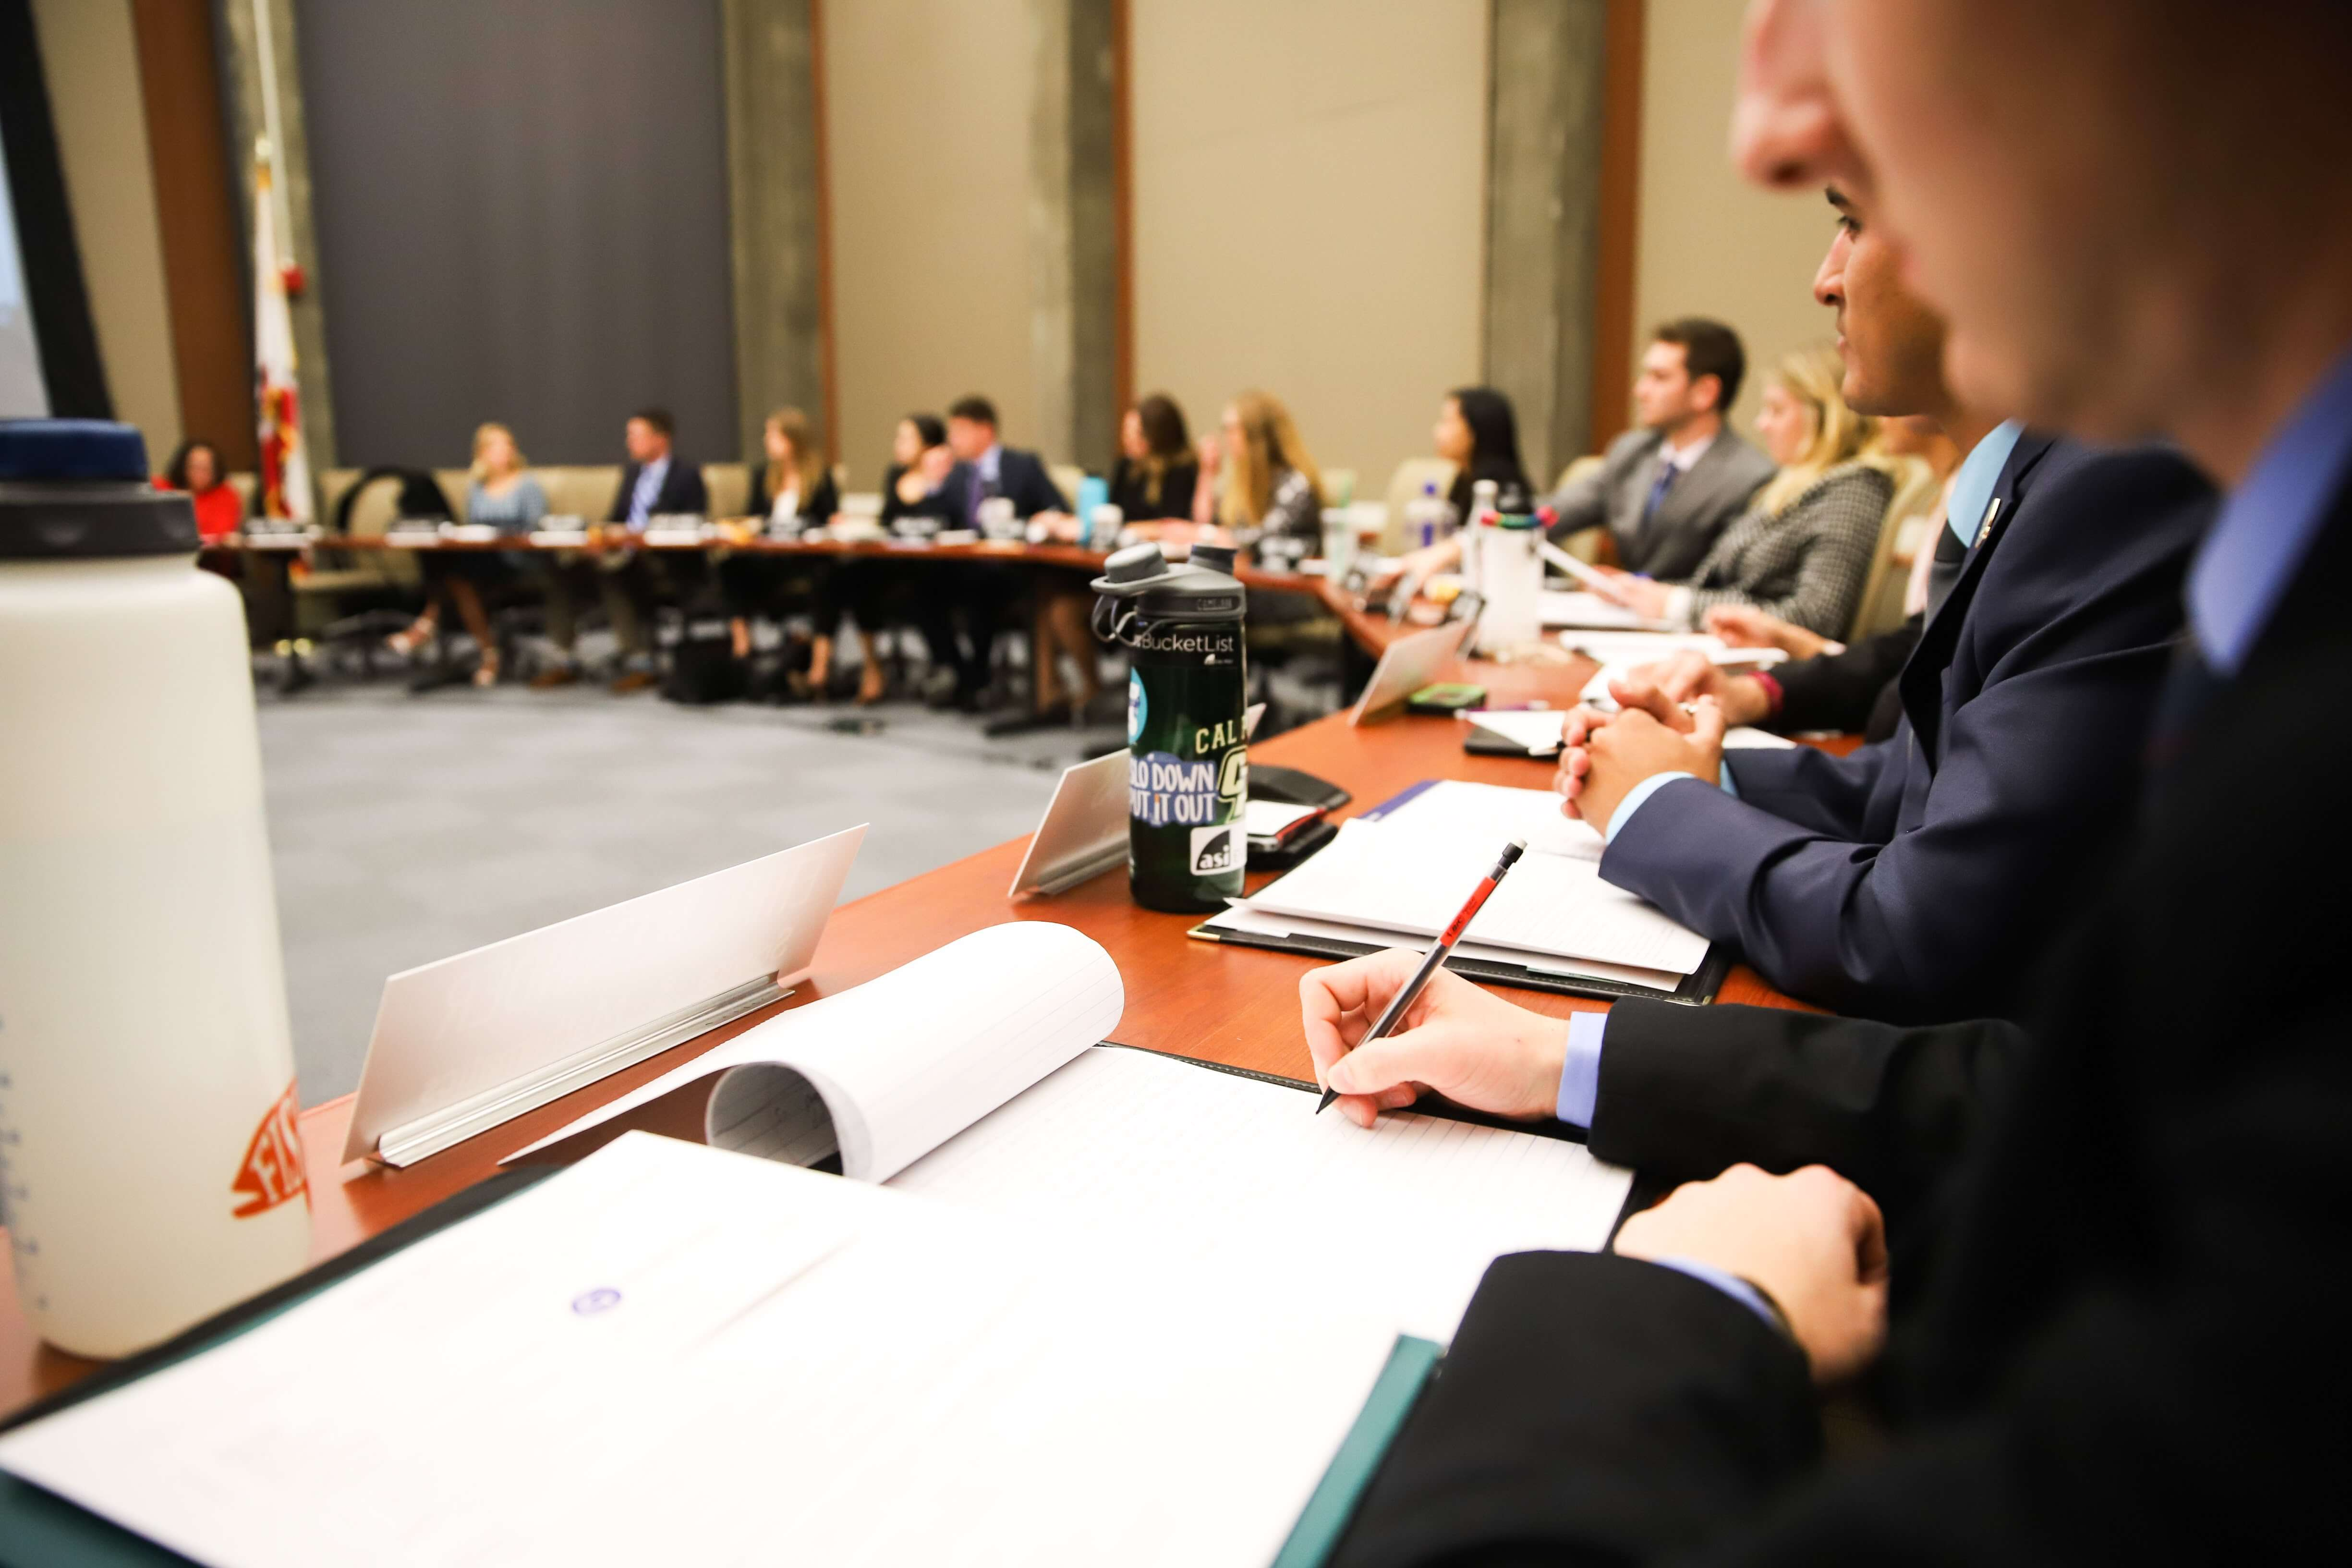 A student takes notes at a round table during an ASI Board of Directors meeting